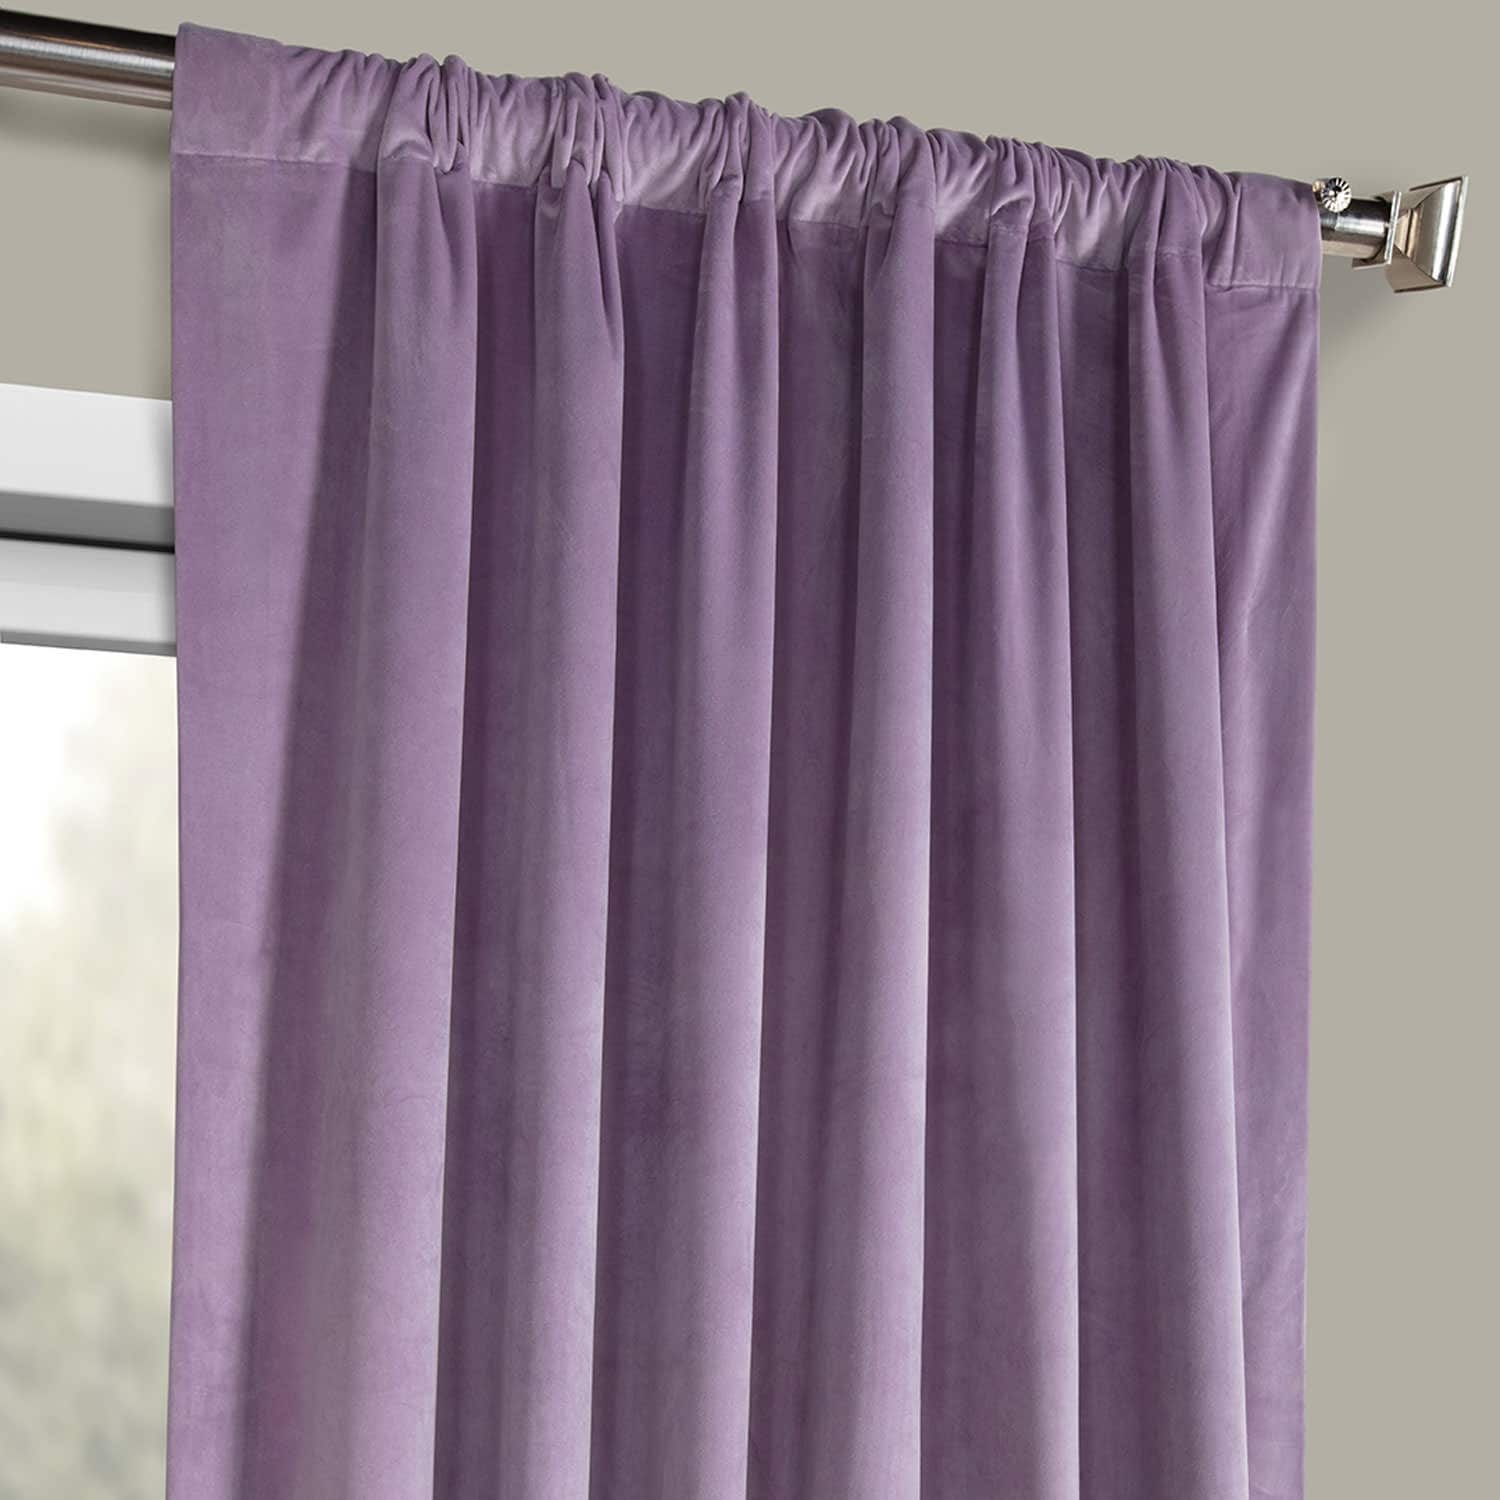 Hyacinth Heritage Plush Velvet Curtain